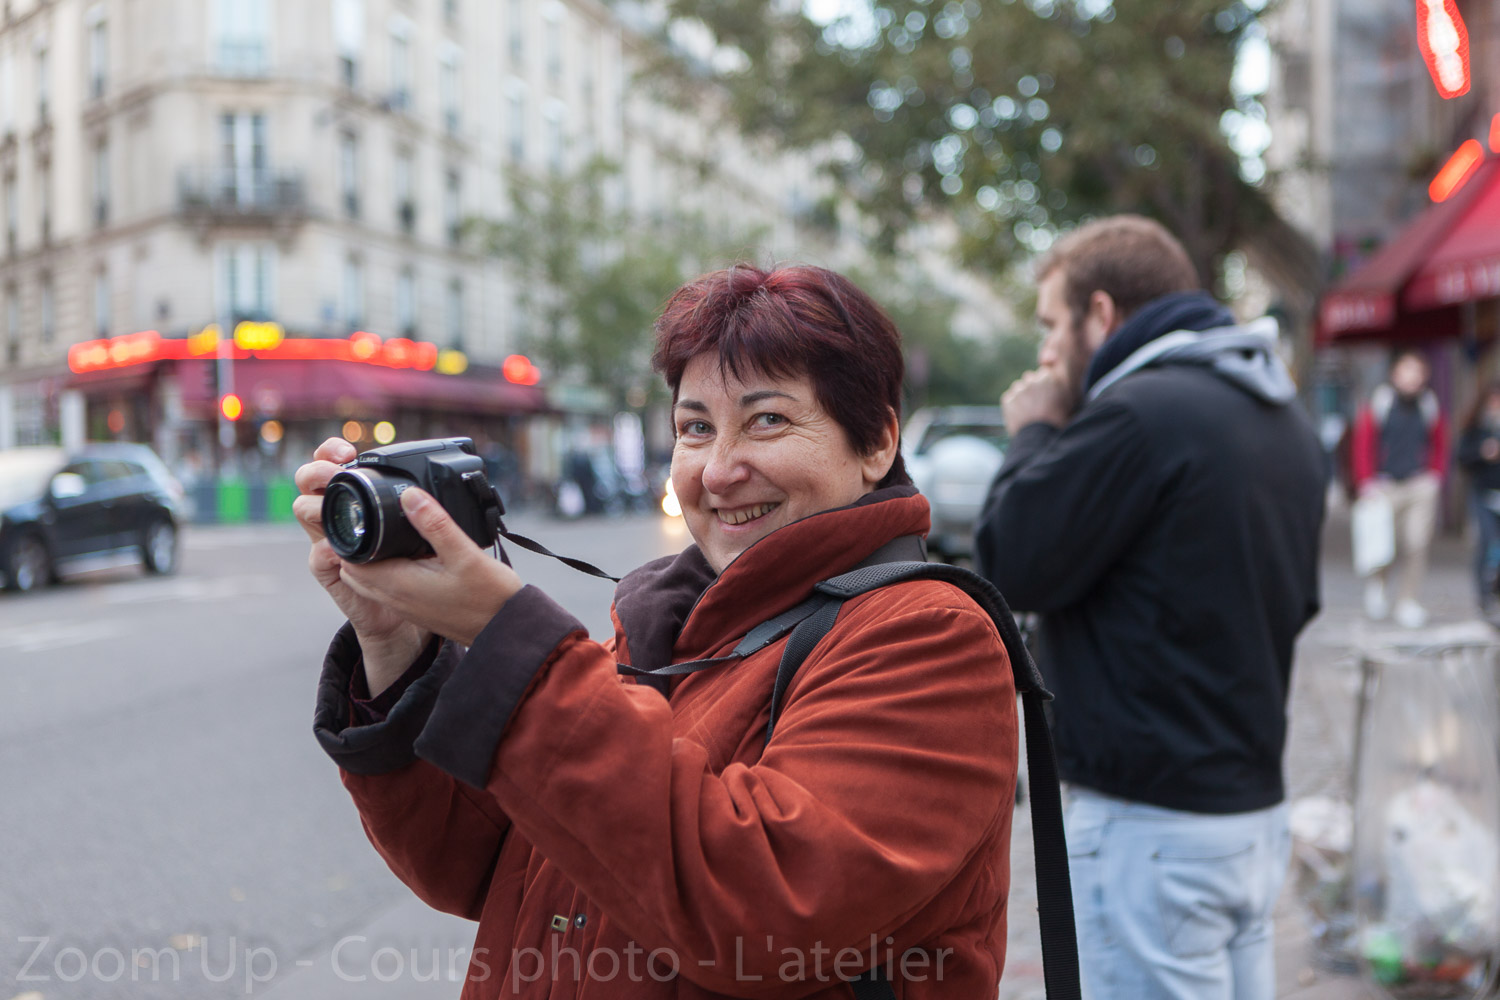 Apprendre la photo avec Zoom'up cours photo